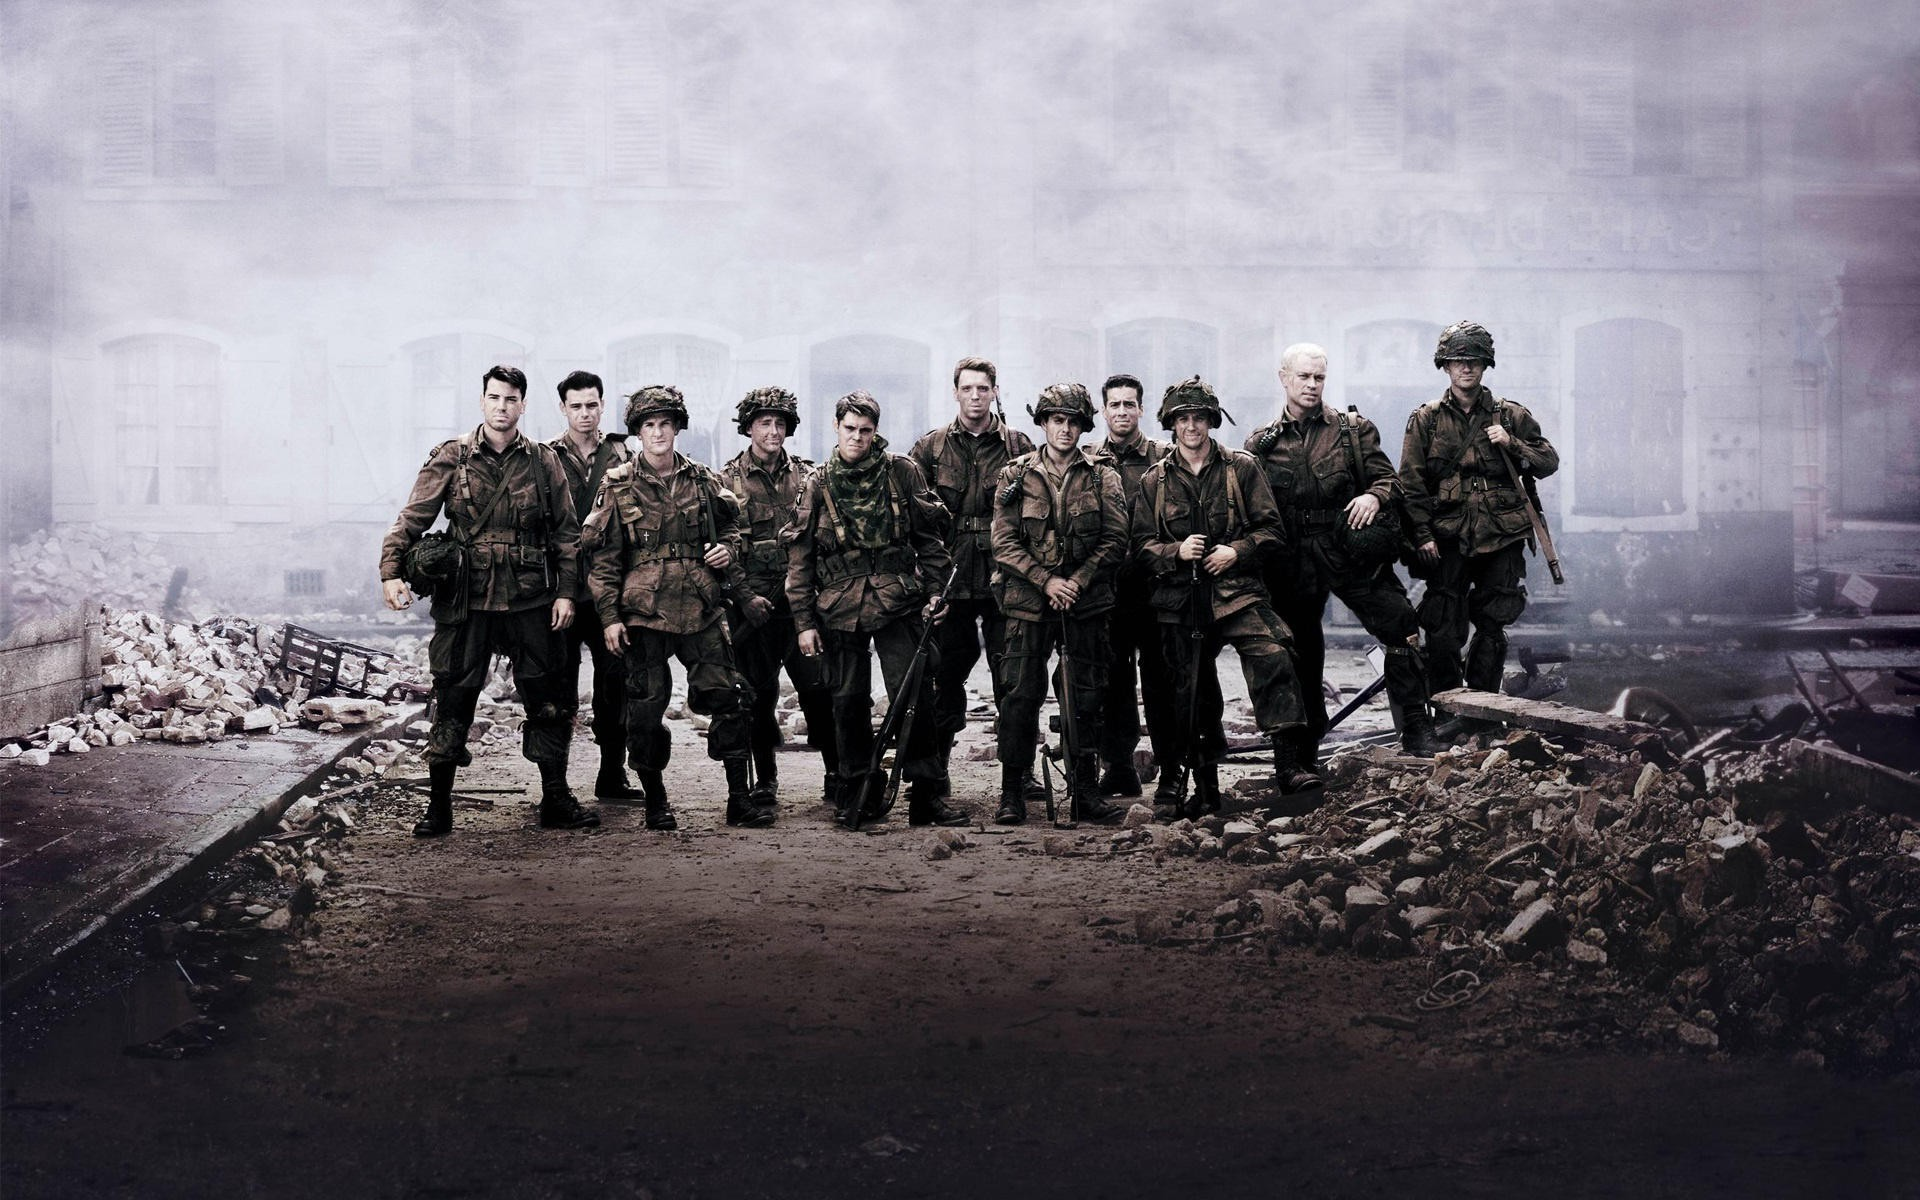 band-of-brothers-wallpaper-32838-33593-hd-wallpapers.jpg